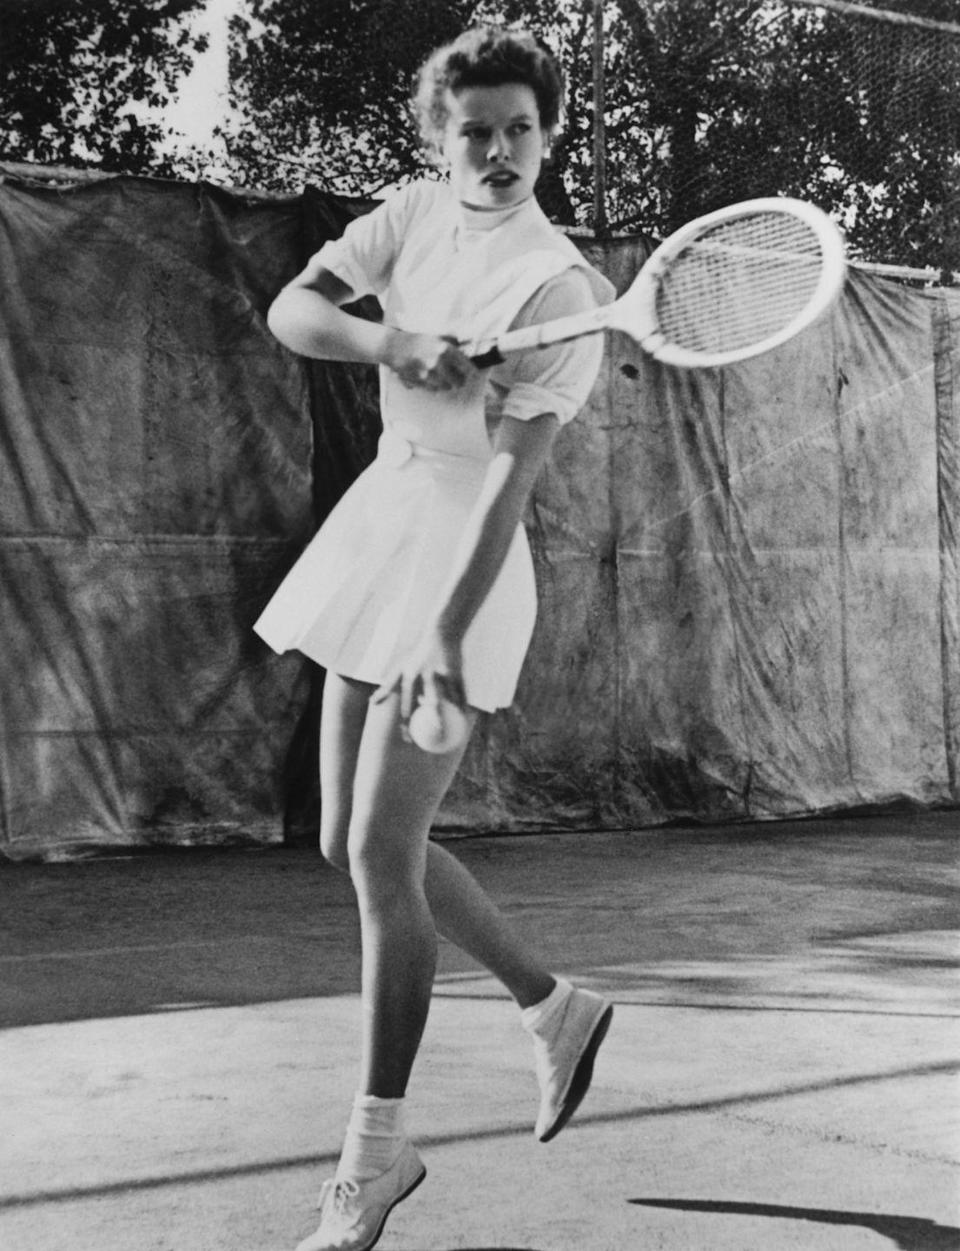 "<p>Starlets often exercised to maintain their physiques, although it wasn't common to talk about it back then. Katharine Hepburn favored tennis and swimming, while Marilyn Monroe was one of the <a href=""https://www.shape.com/celebrities/celebrity-photos/shape-secrets-old-hollywood-glamour-girls?slide=1be7c231-f7e8-435c-b293-6cf2f6bf645f#1be7c231-f7e8-435c-b293-6cf2f6bf645f"" rel=""nofollow noopener"" target=""_blank"" data-ylk=""slk:first actresses to regularly lift weights"" class=""link rapid-noclick-resp"">first actresses to regularly lift weights</a>. </p>"